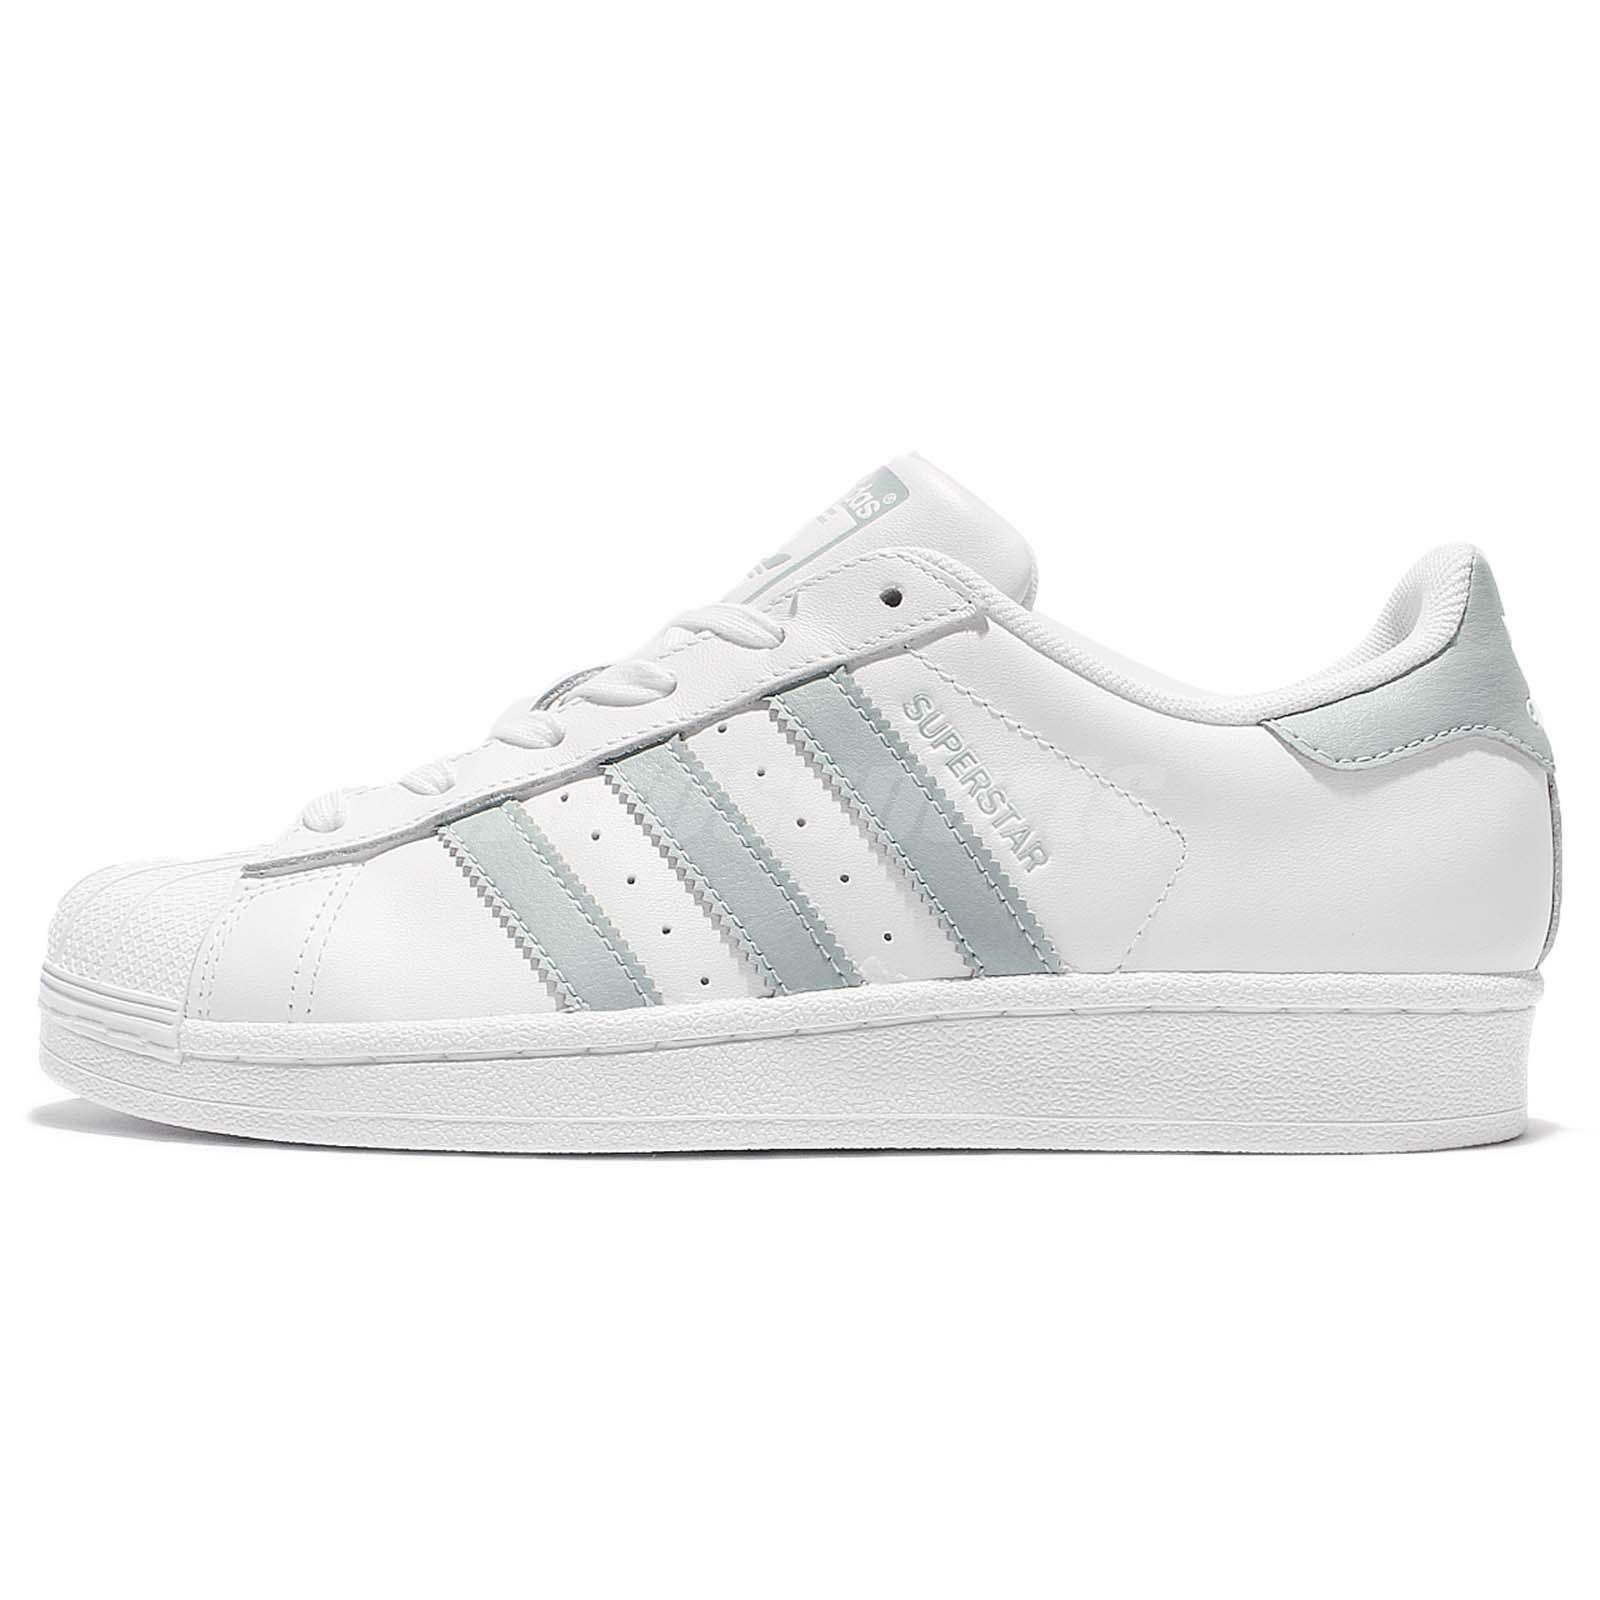 Adidas Superstar White Pastel Green White (WS) (CG2885)